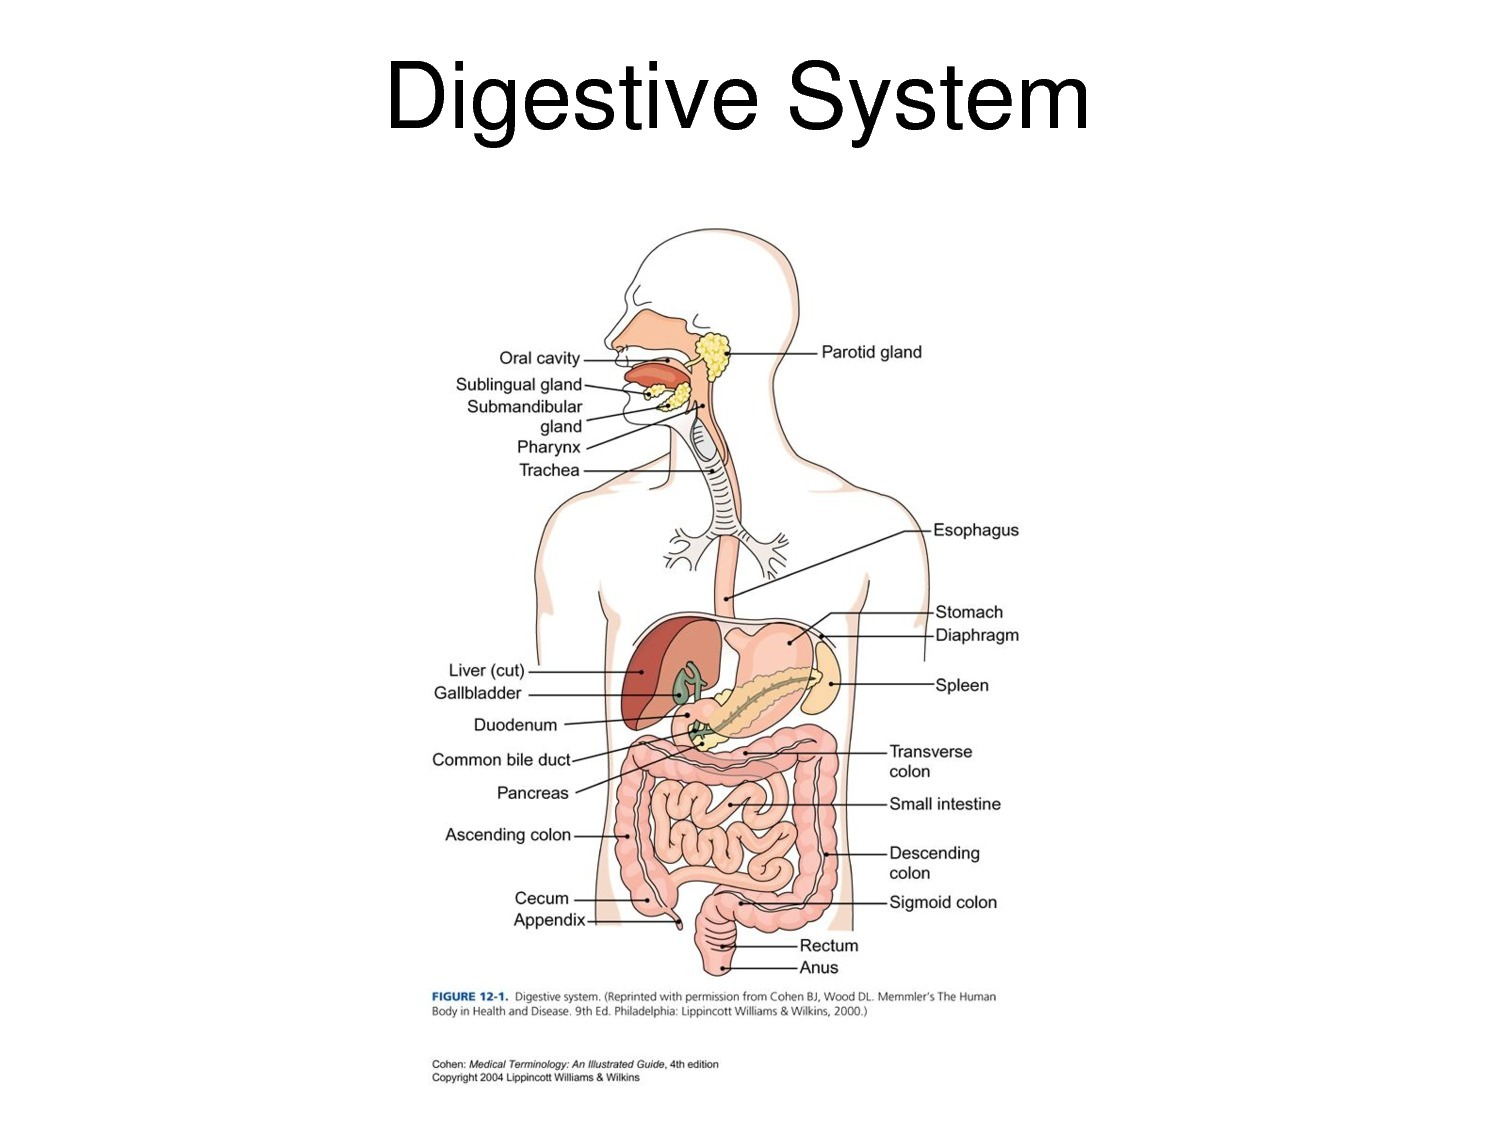 With The Help Of A Diagram Describe How Food Gets Digested And Assimilated In The Human